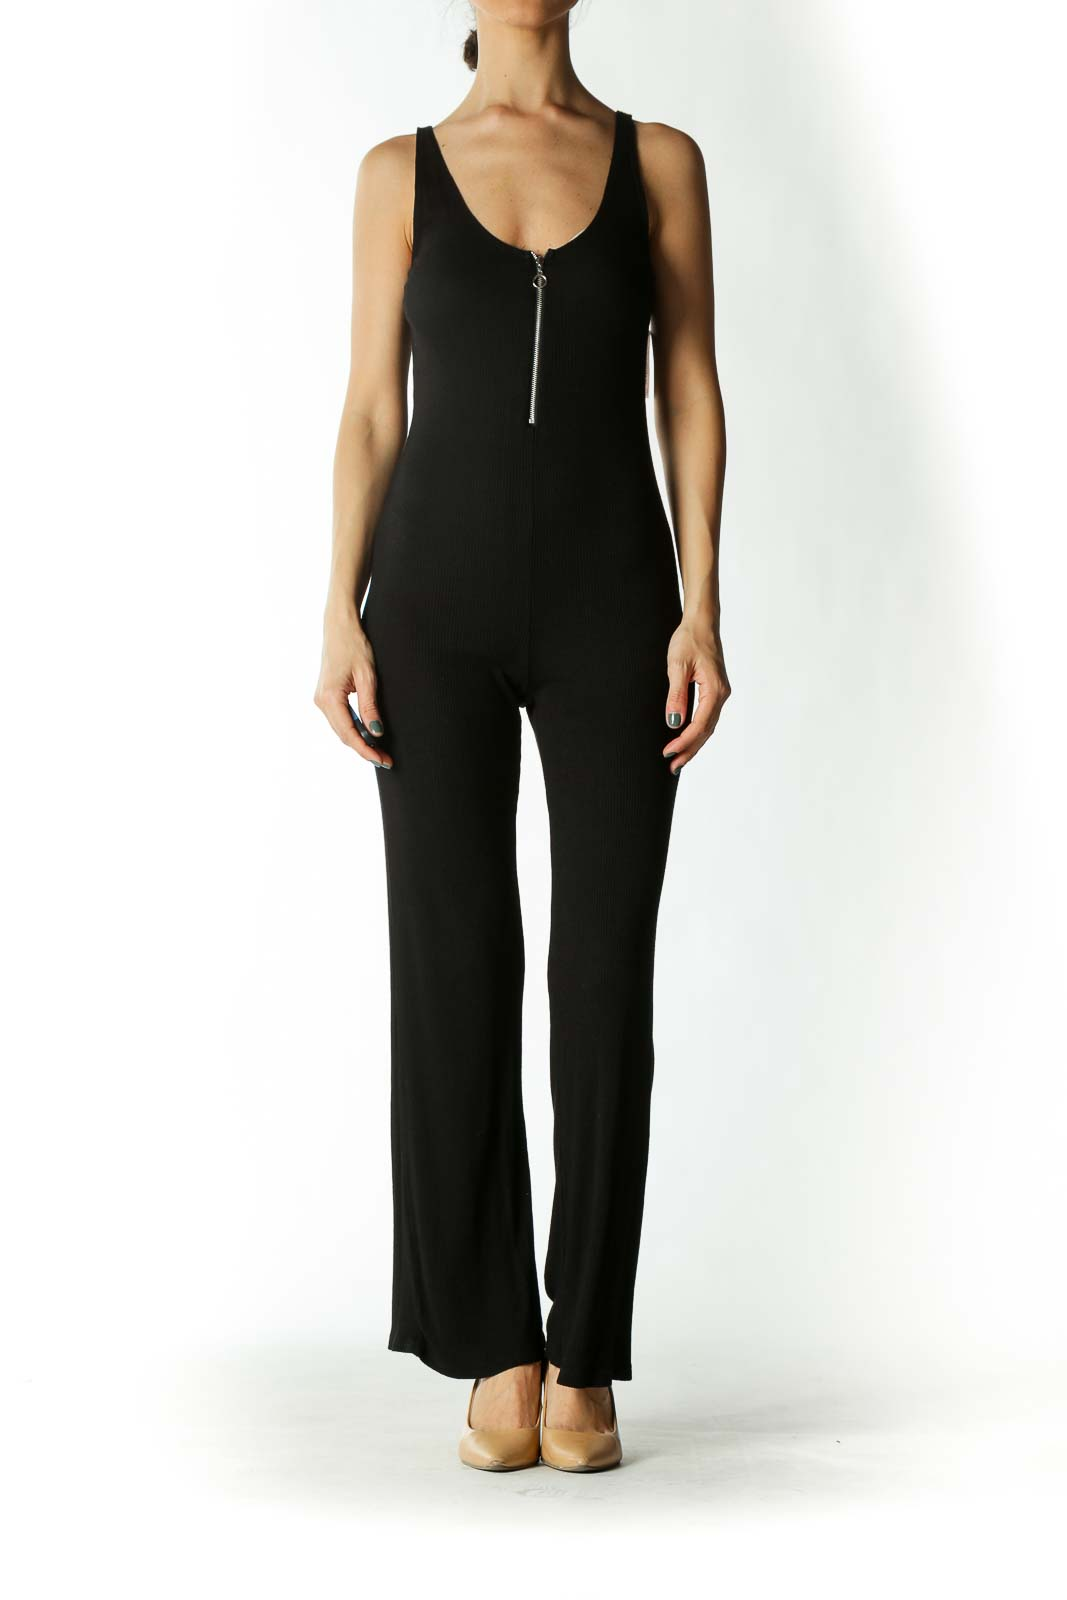 Black Sleeveless Zip-Up Fitted Jumpsuit